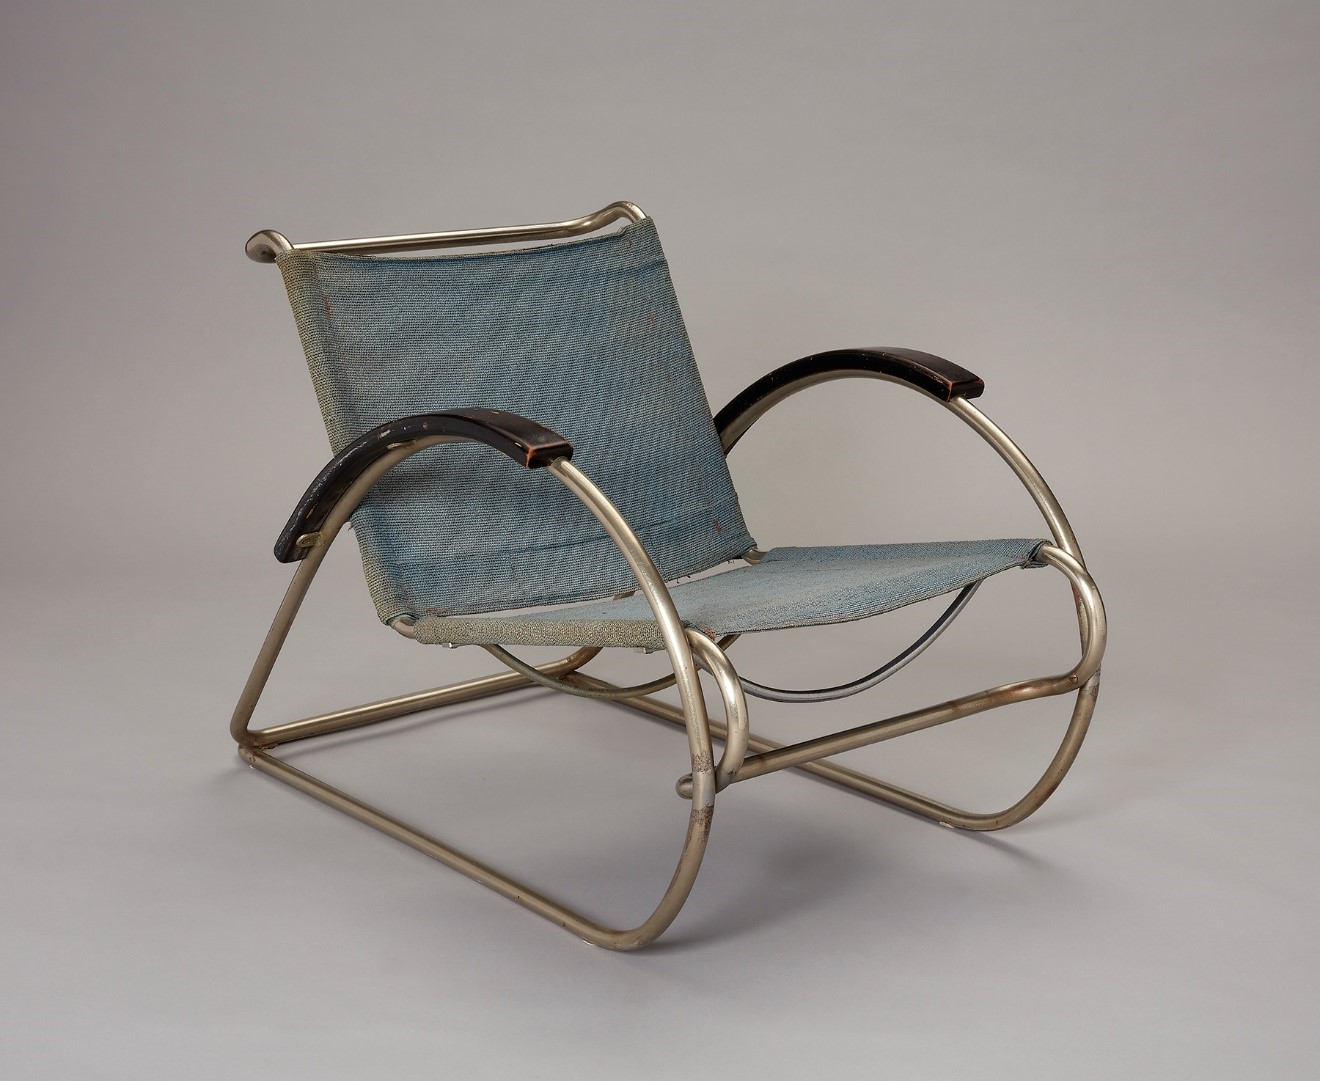 Erich Dieckmann (German, 1896–1944), produced by Cebaso Stahlrohrmöbel (Ohrdruf, Thüringen, Germany, 1882–1934), Armchair (model 8219), 1931. Nickel-plated tubular steel, painted wood, fabric, and original Eisengarn. Milwaukee Art Museum, Purchase, with funds from the Demmer Charitable Trust, M2017.15. Photo by John R. Glembin.